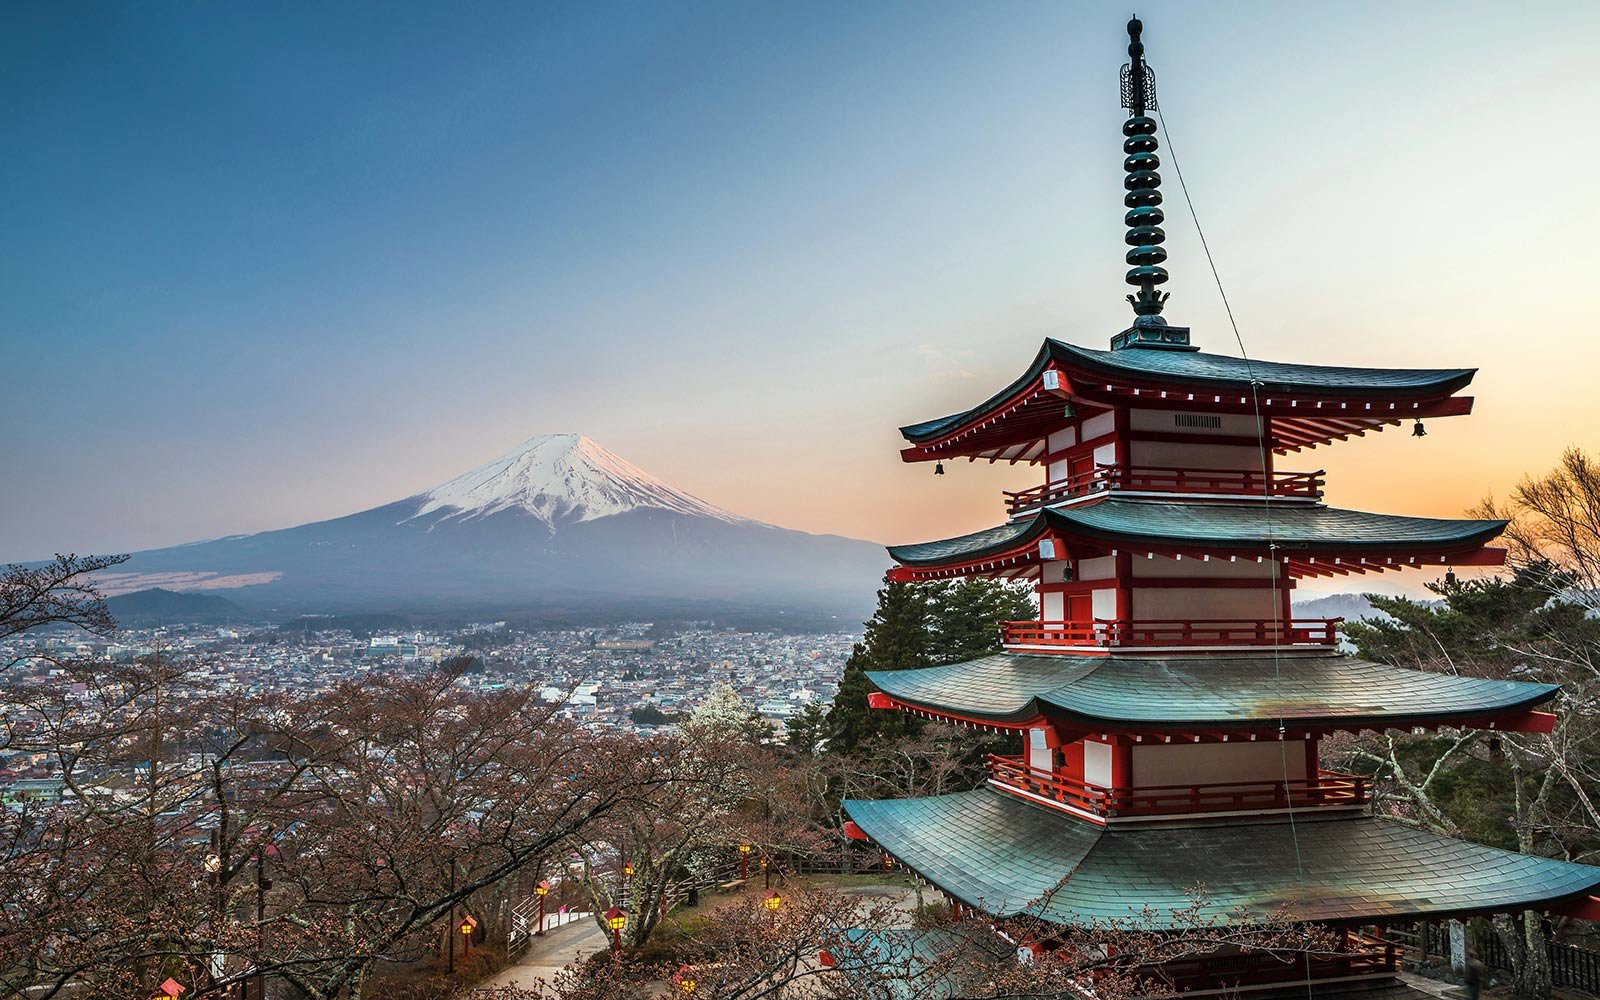 Japan's samurai castles: Where to find the most fascinating ones | CNN Travel